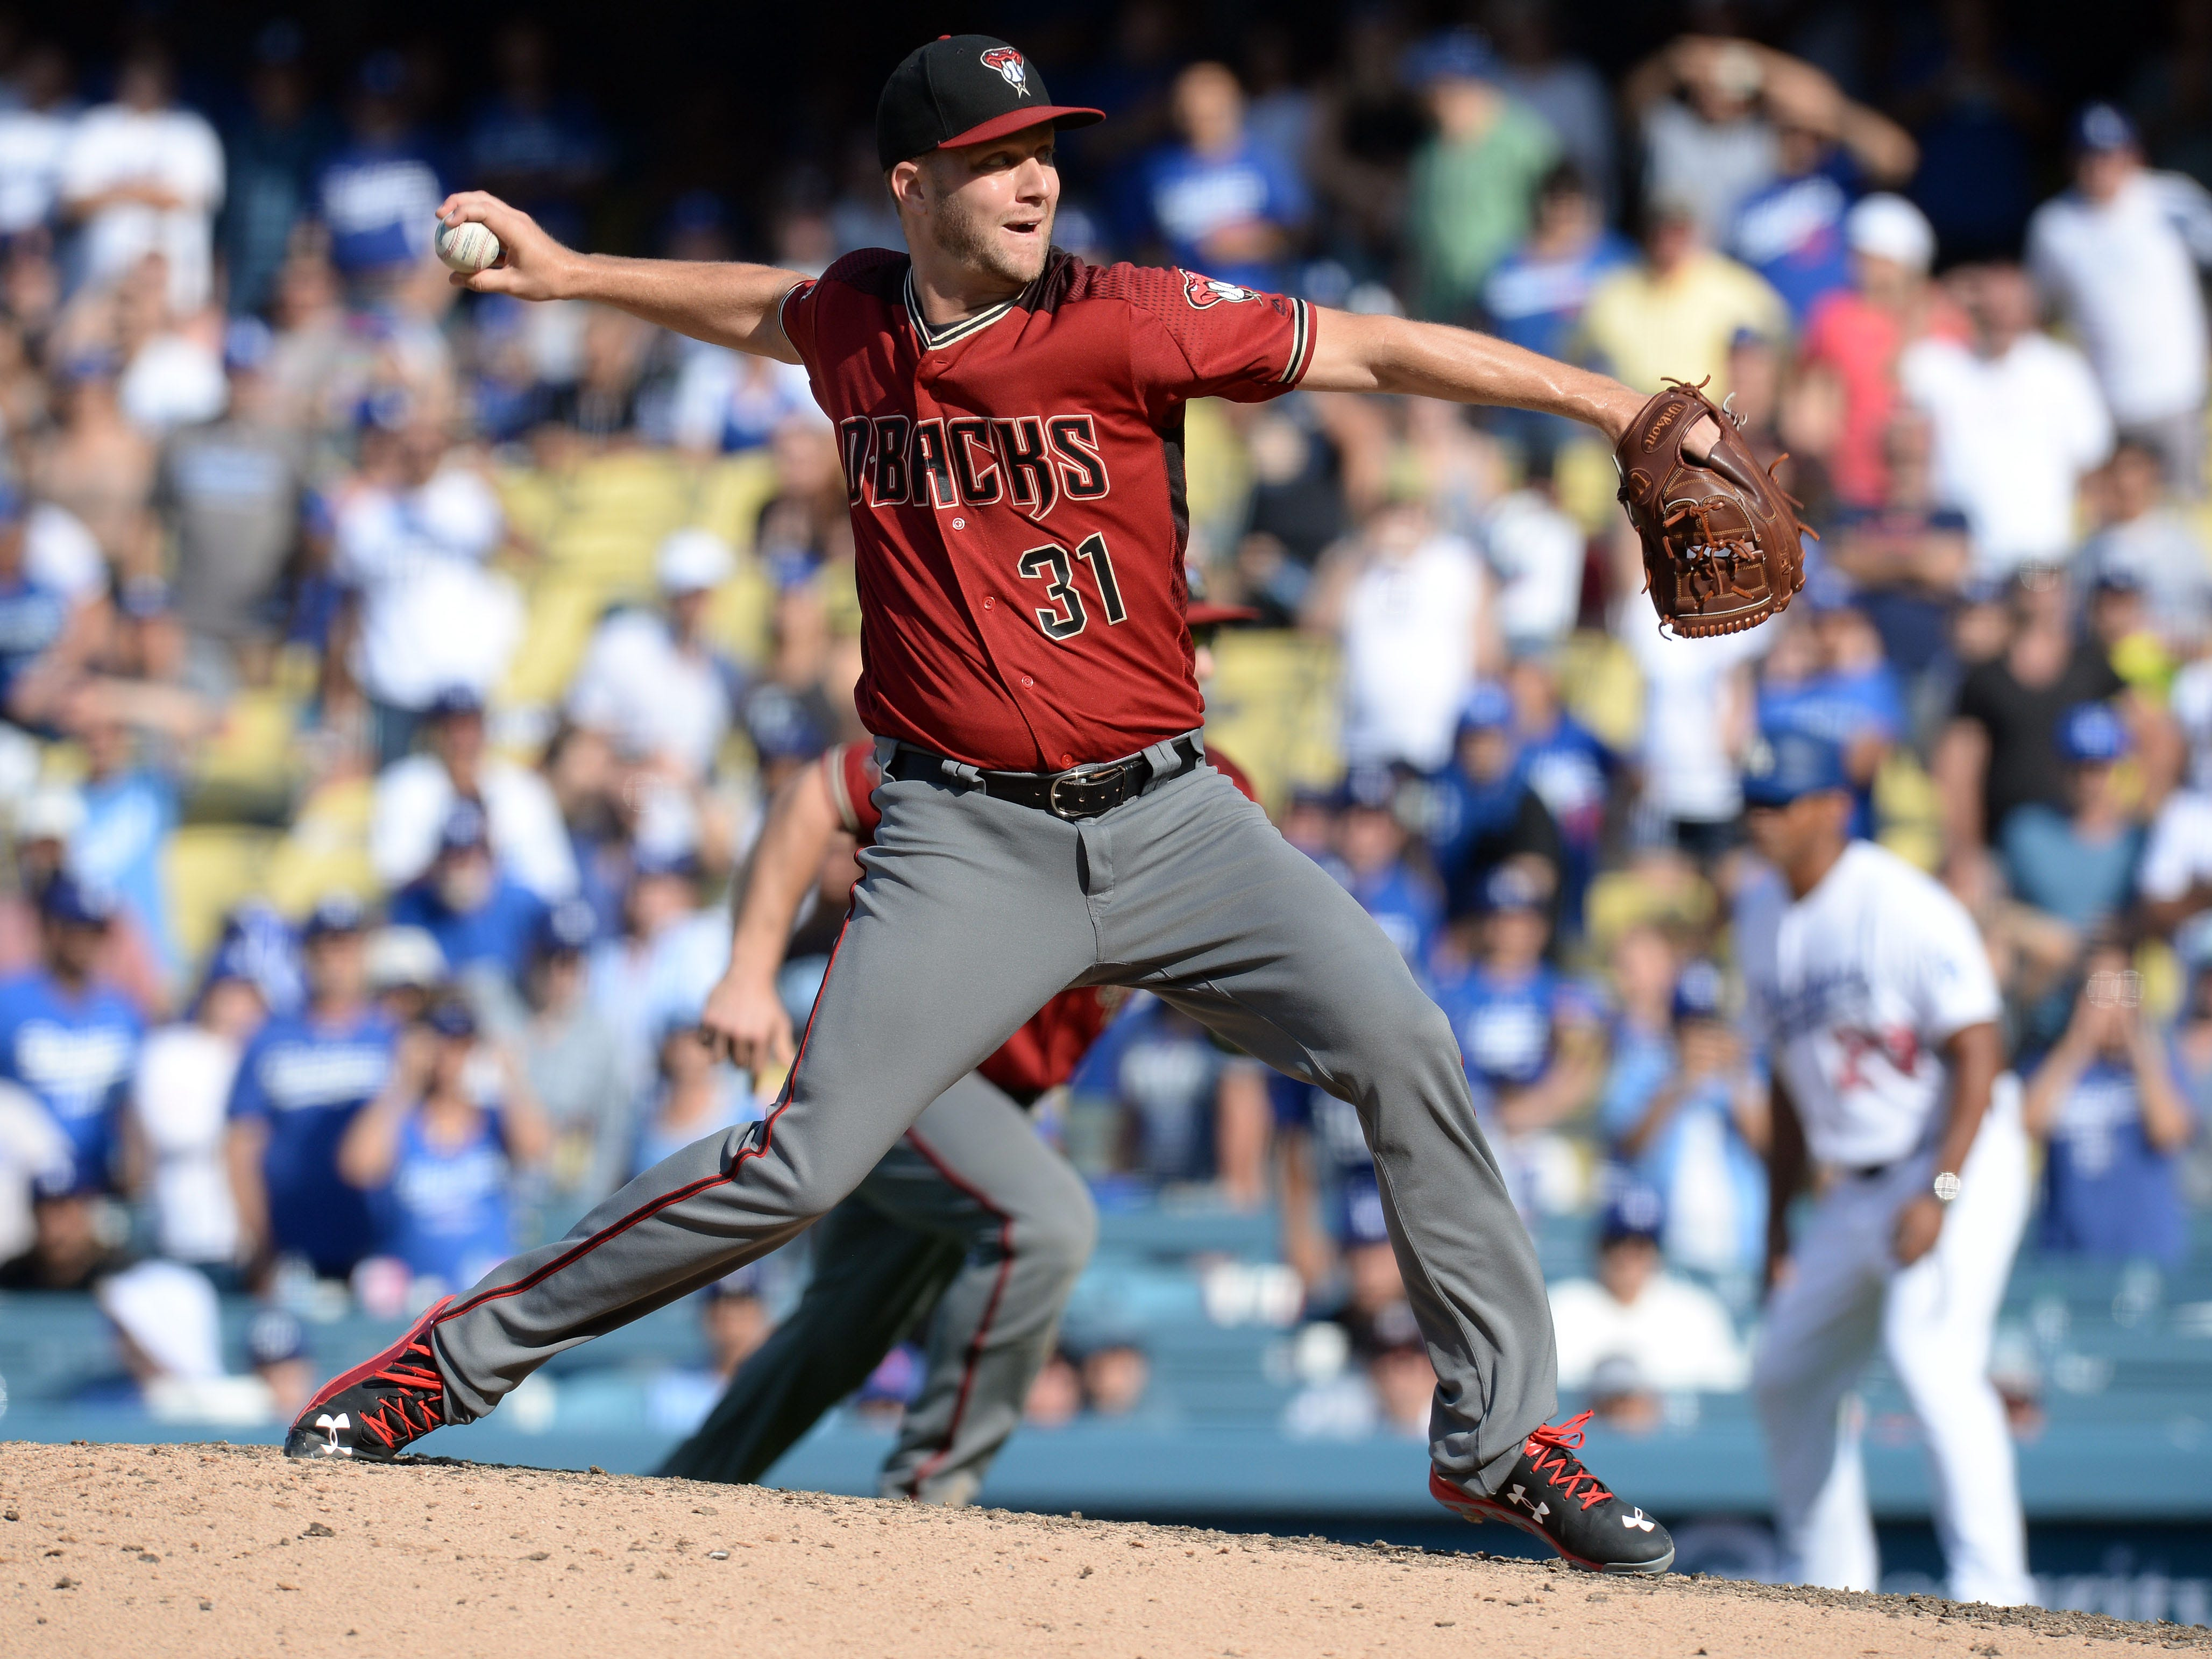 September 2, 2018; Los Angeles, CA, USA; Arizona Diamondbacks relief pitcher Brad Boxberger (31) throws against the Los Angeles Dodgers in the ninth inning at Dodger Stadium. Mandatory Credit: Gary A. Vasquez-USA TODAY Sports